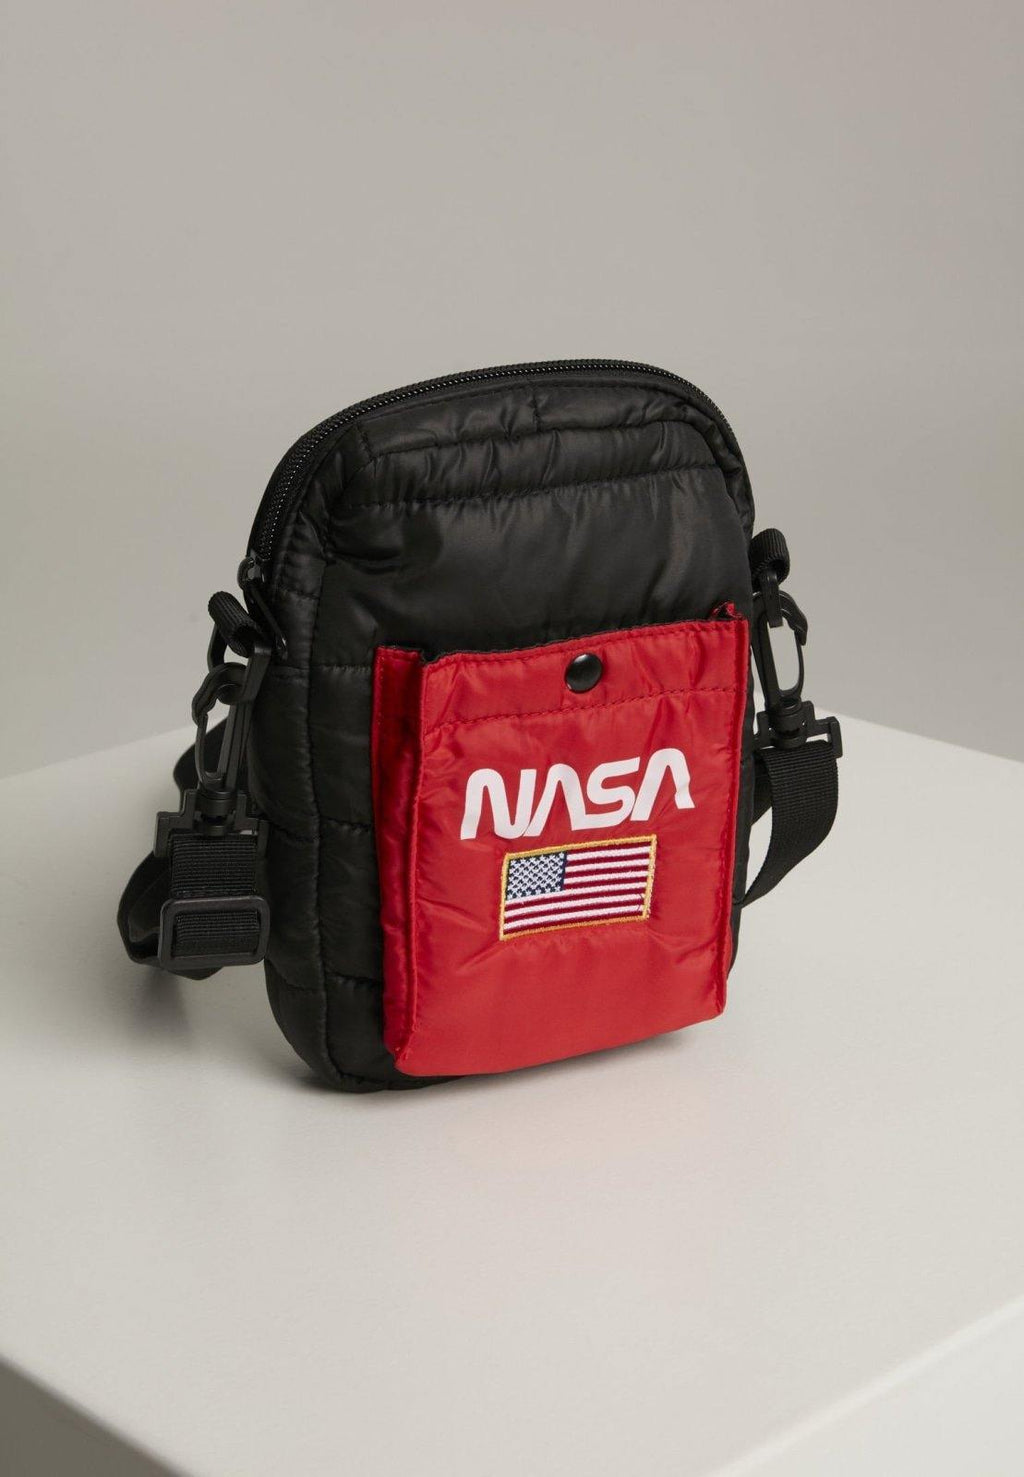 NASA Festival Bag - DadiTude